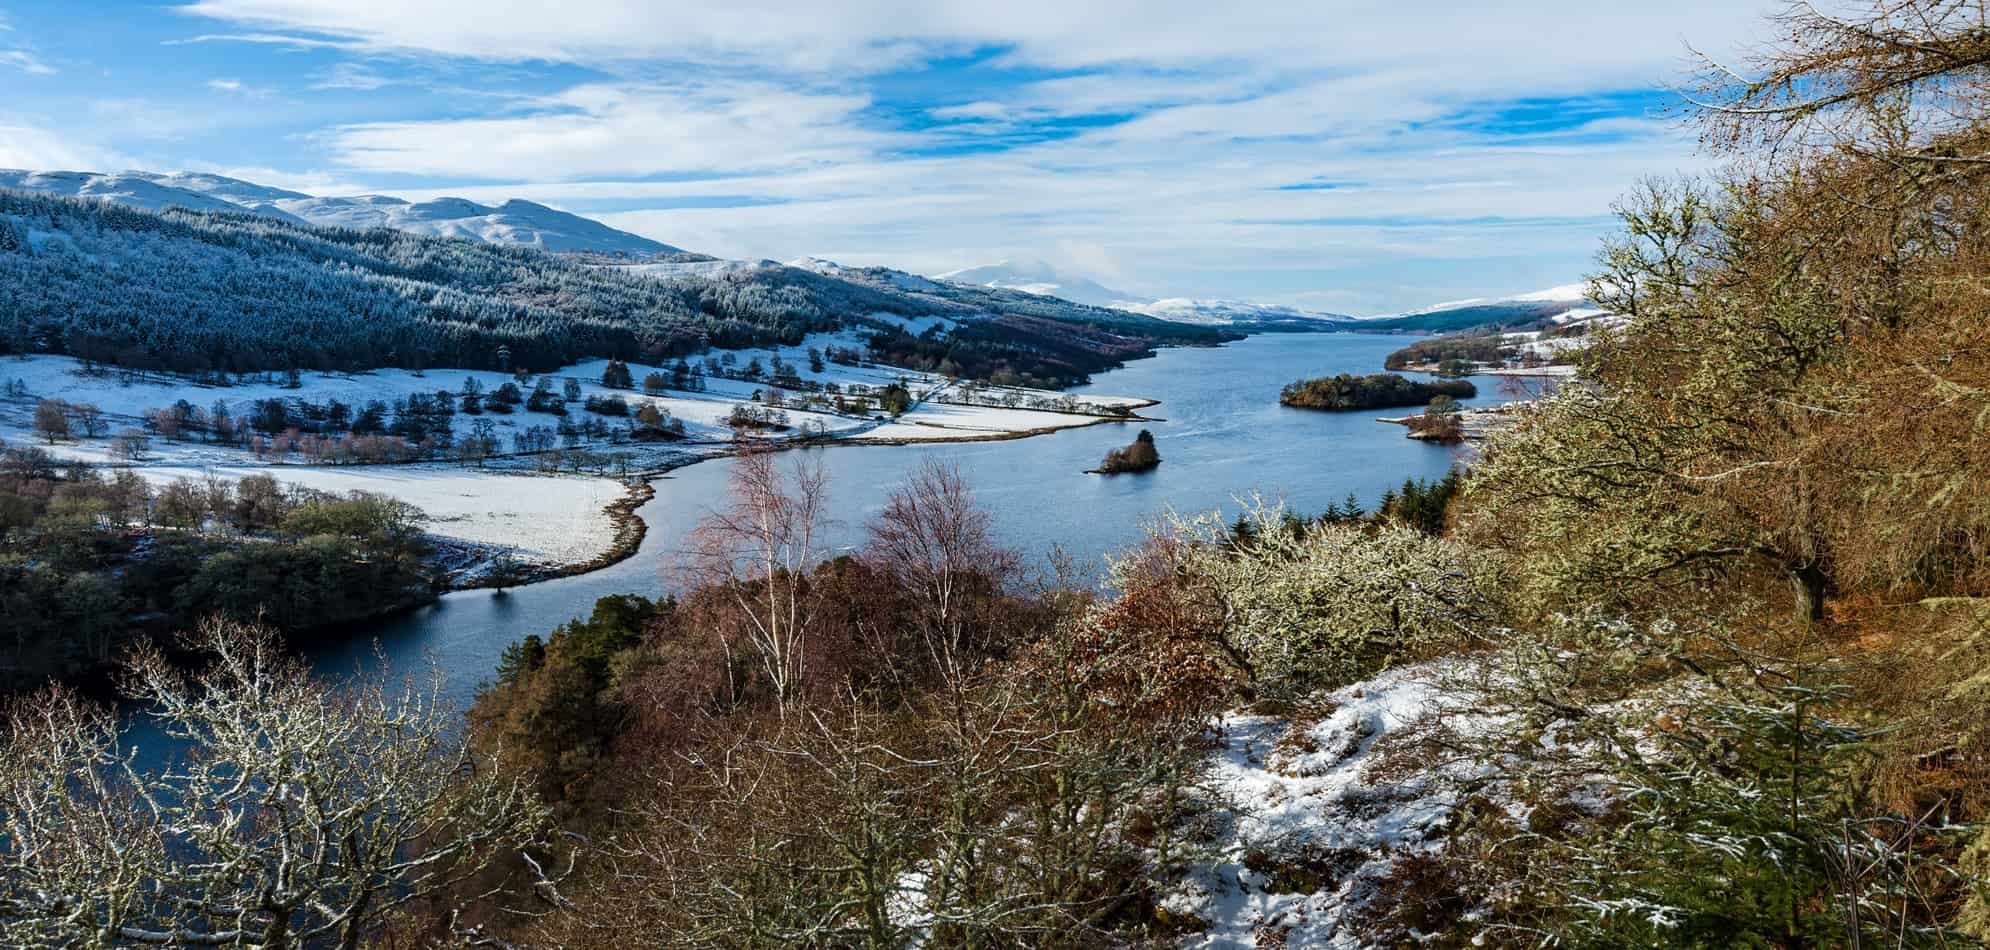 Five Things to Expect on Your Winter Break in Scotland